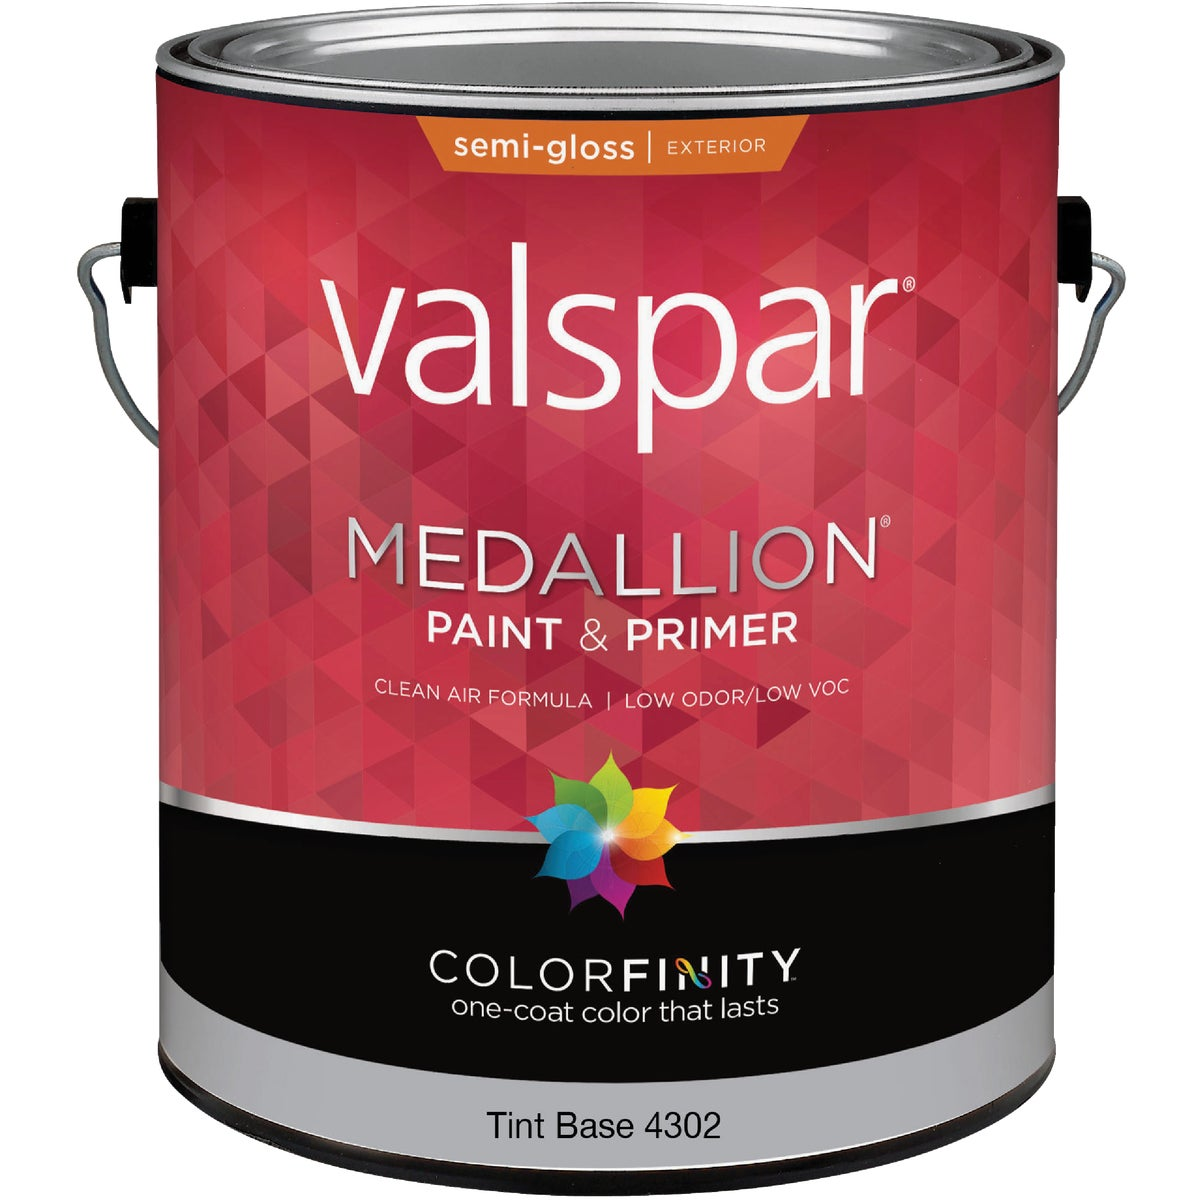 EXT S/G TINT BS PAINT - 027.0004302.007 by Valspar Corp